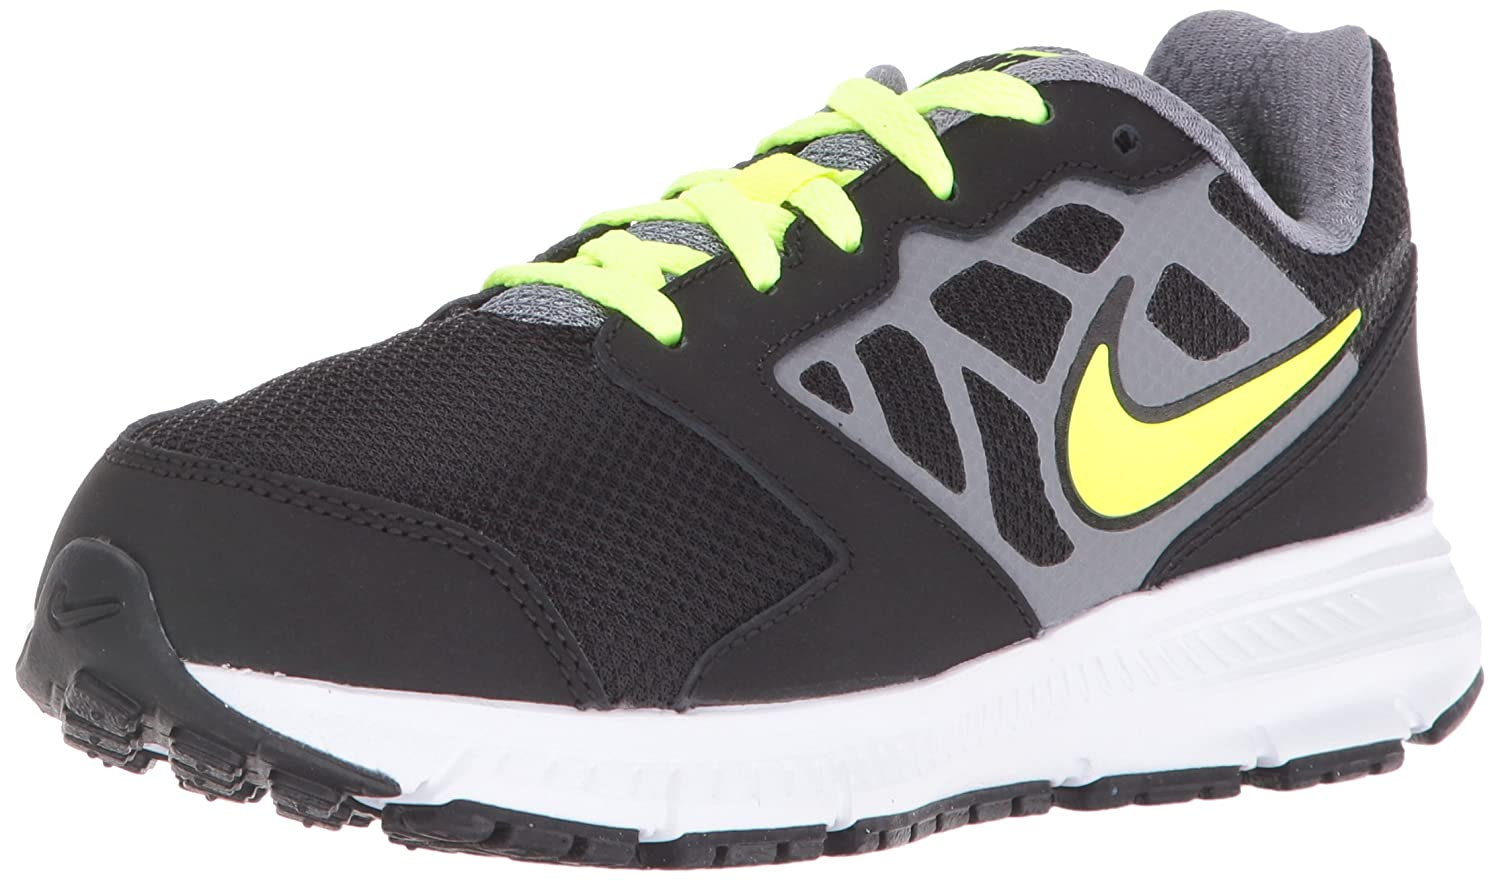 NIKE ' Downshifter 6 (GS/PS) Running Shoes B008RQM8PE 4.5 M US Big Kid|Black/Volt/Cool Grey/Rio Teal